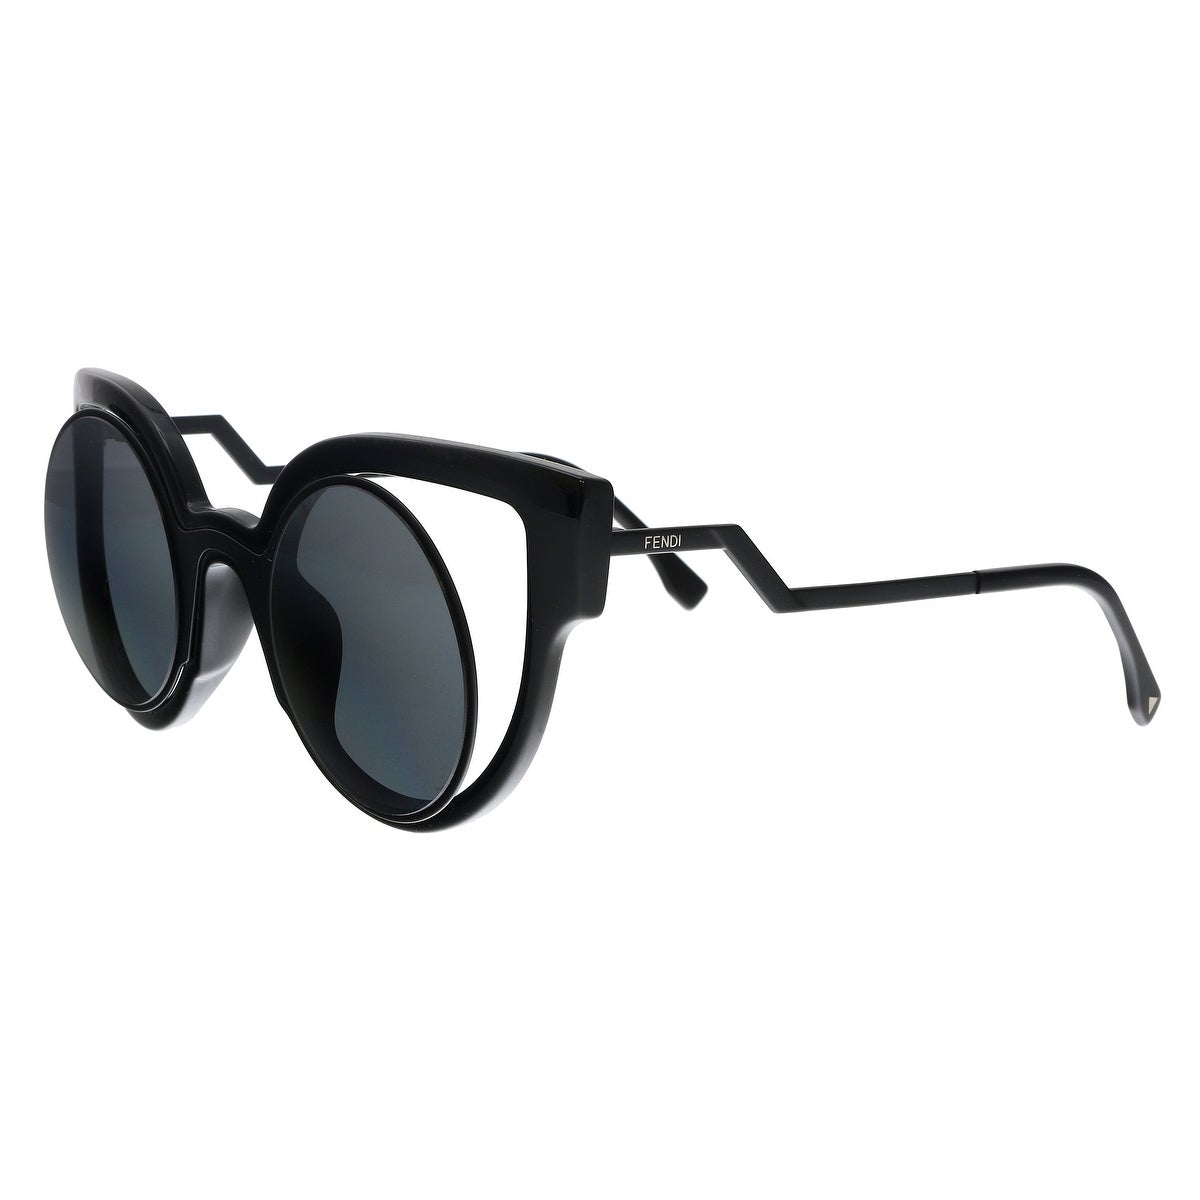 7c66b4349b Fendi Women s Sunglasses